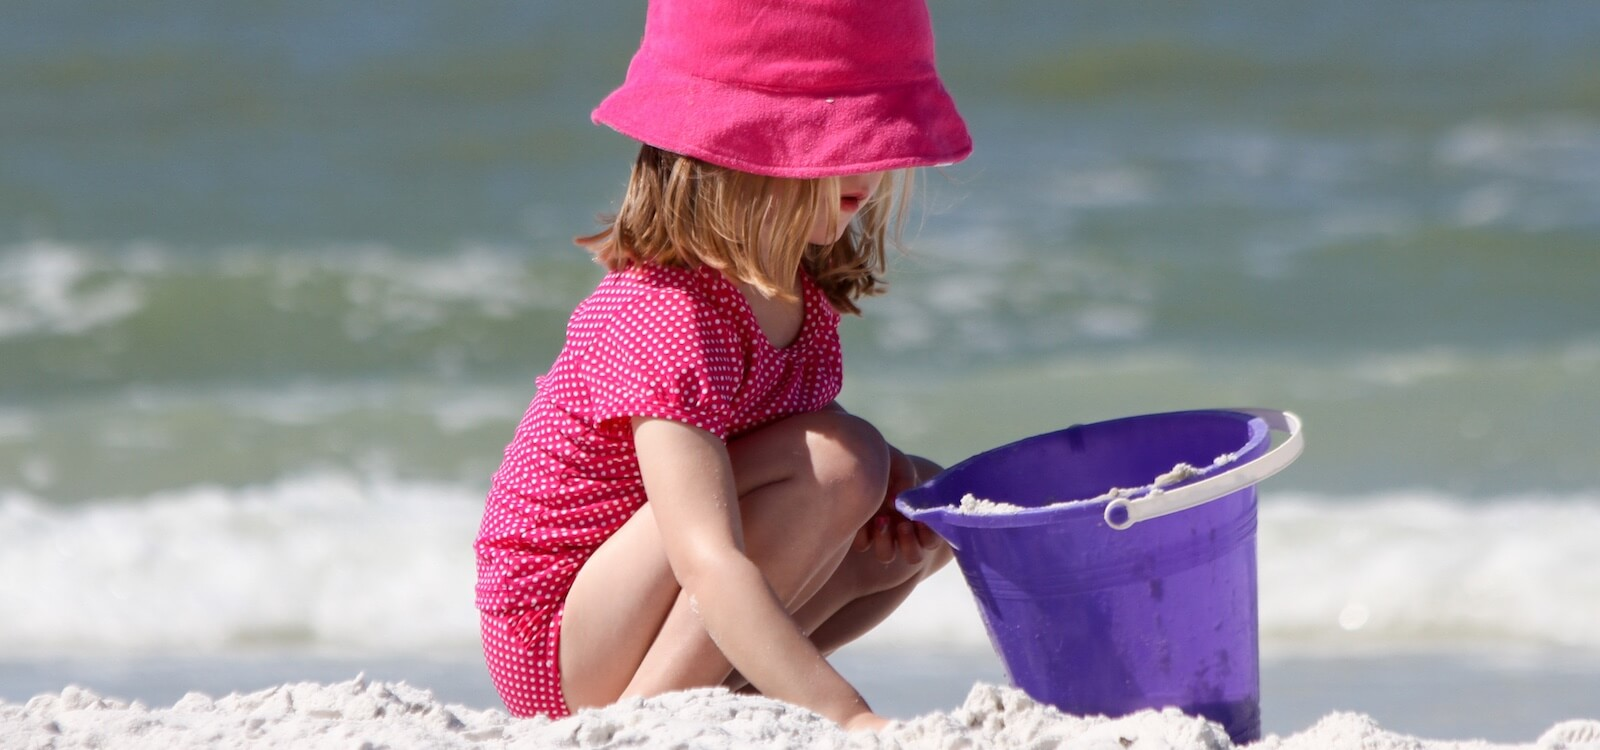 MustDo.com | Must Do Visitor Guides best family beaches to visit while on vacation in Sarasota, Florida.